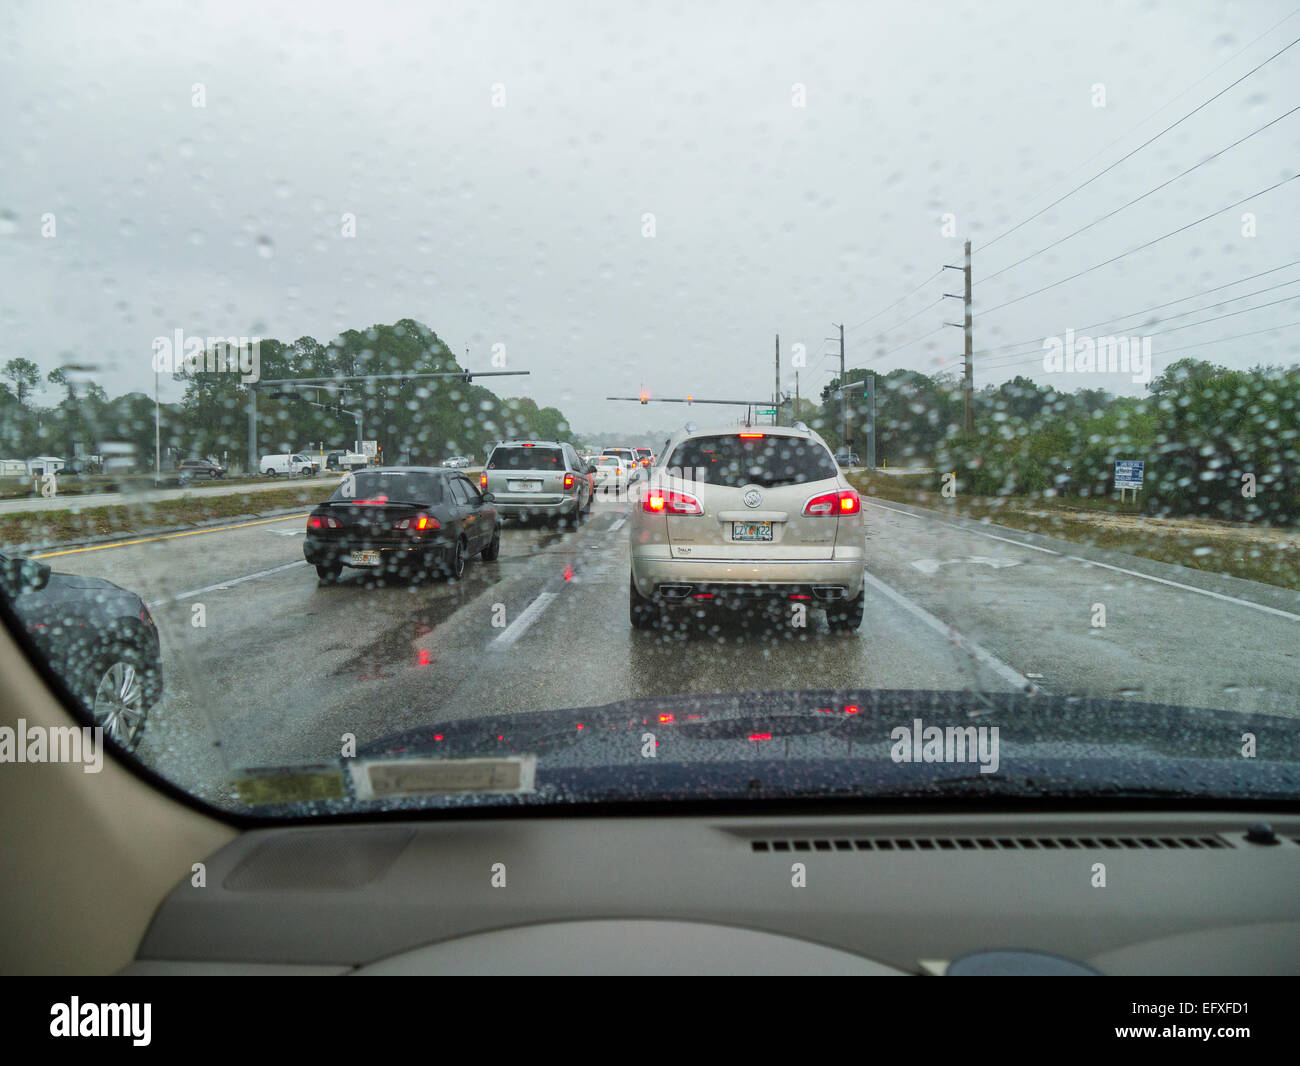 Traffic stopped at traffic light on a rainy overcast day - Stock Image